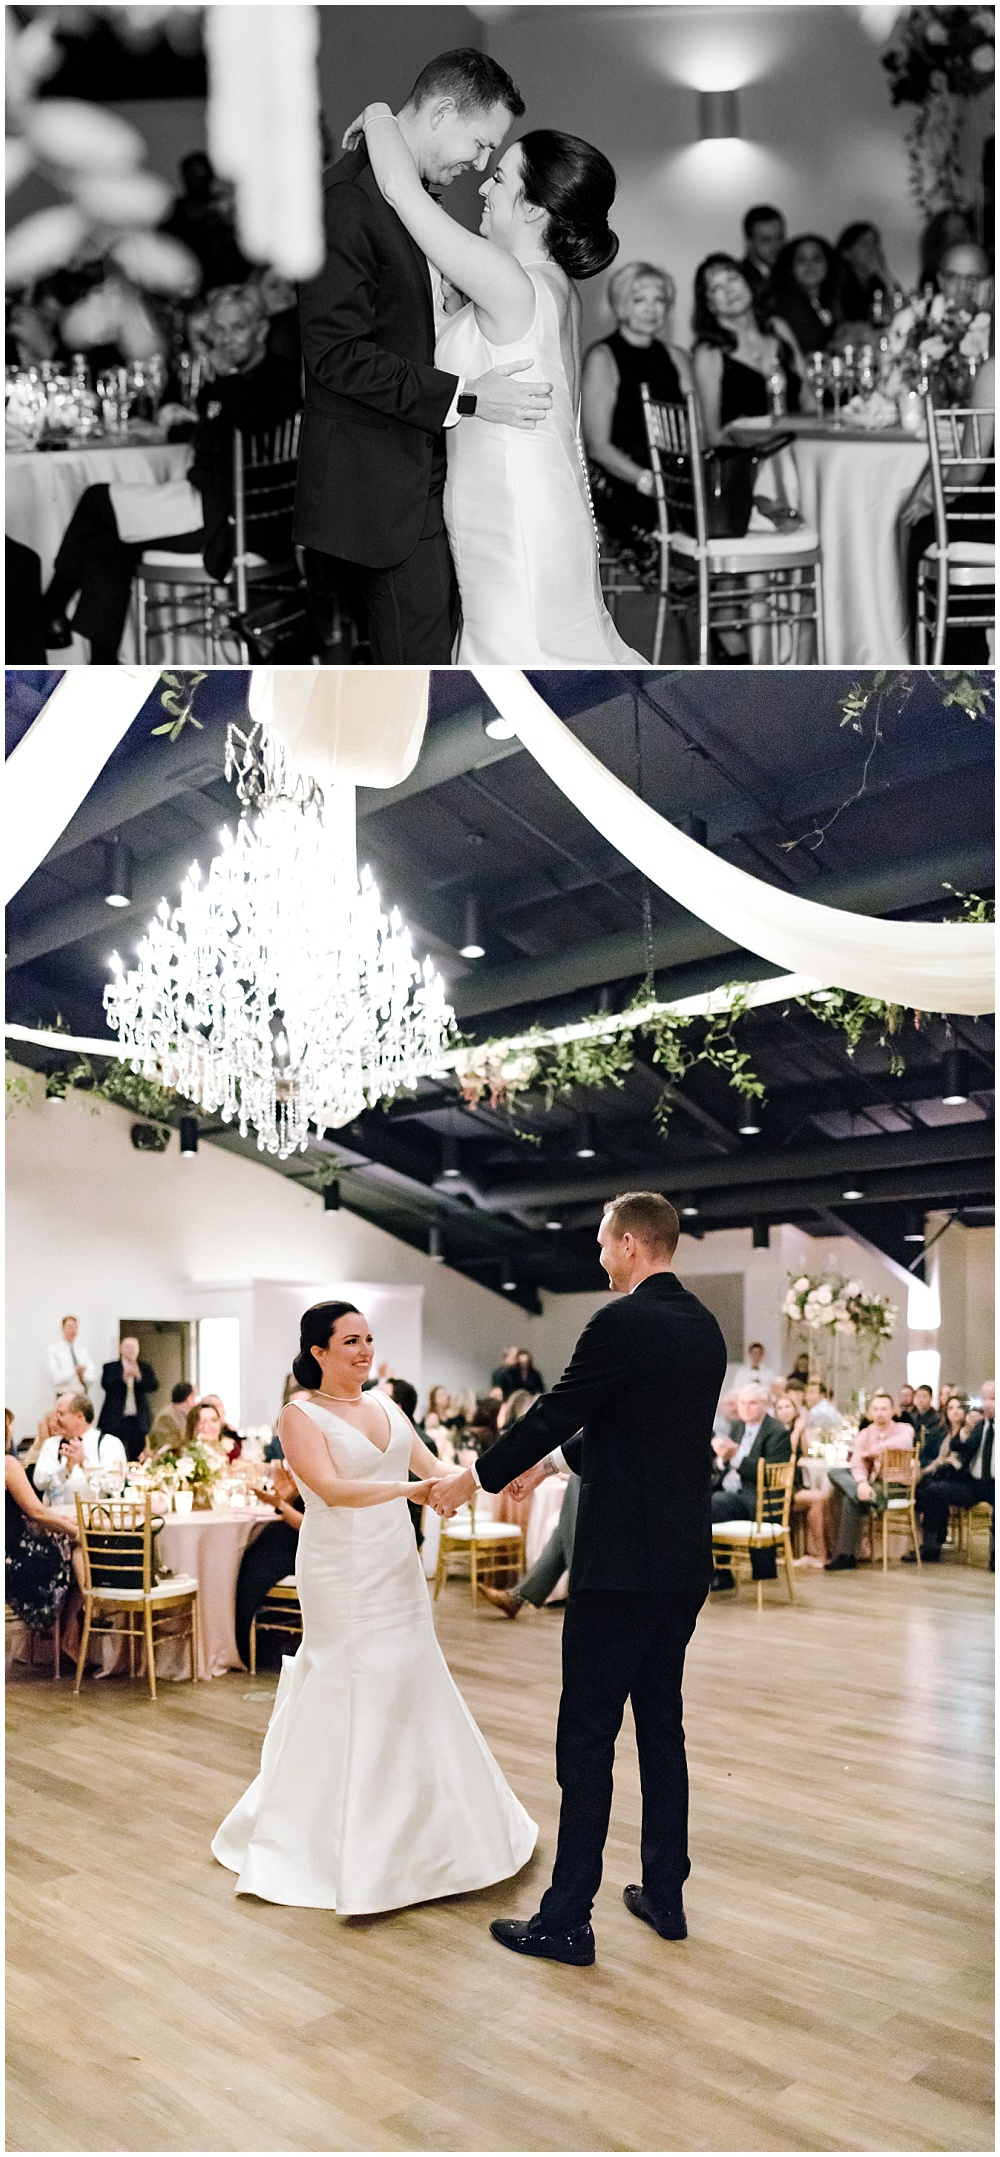 Bride and groom first dance under a crystal chandelier adorned with greenery and white draping | Daniel's Vineyard wedding with Ivan & Louise + Jessica Dum Wedding Coordination